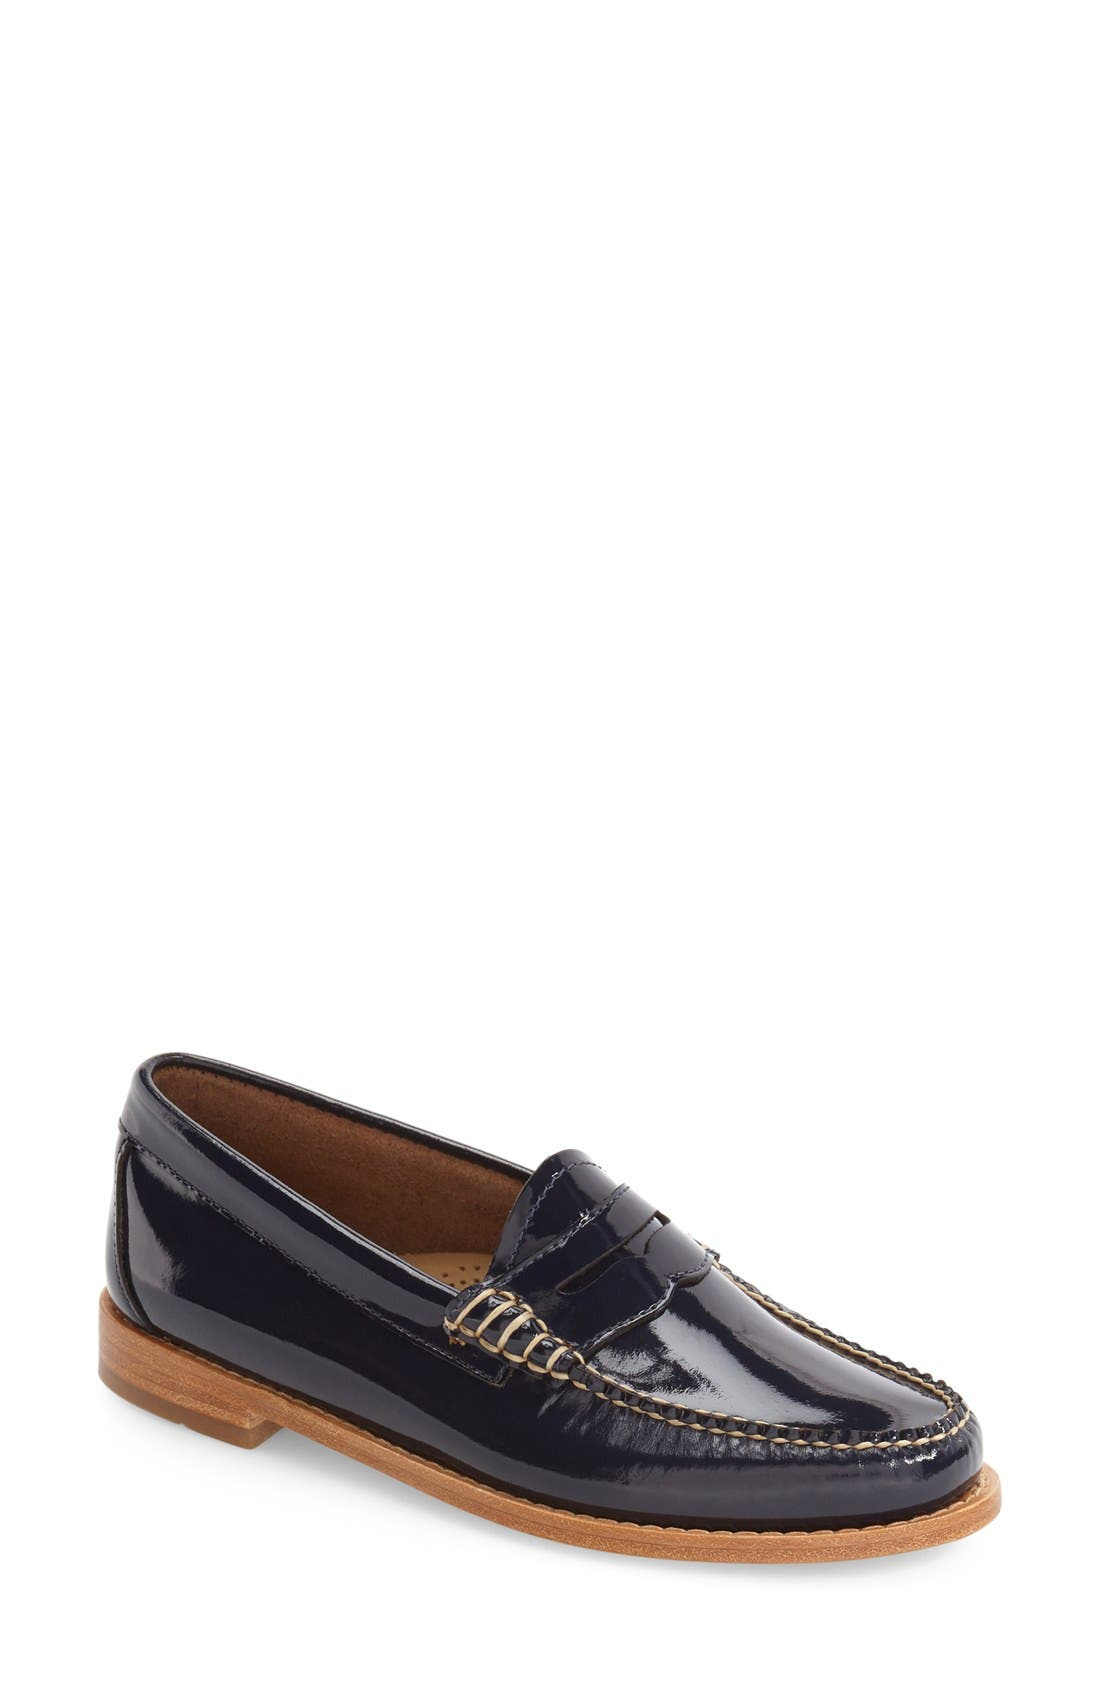 Alternate Image 1 Selected - G.H. Bass & Co. 'Whitney' Loafer (Women)